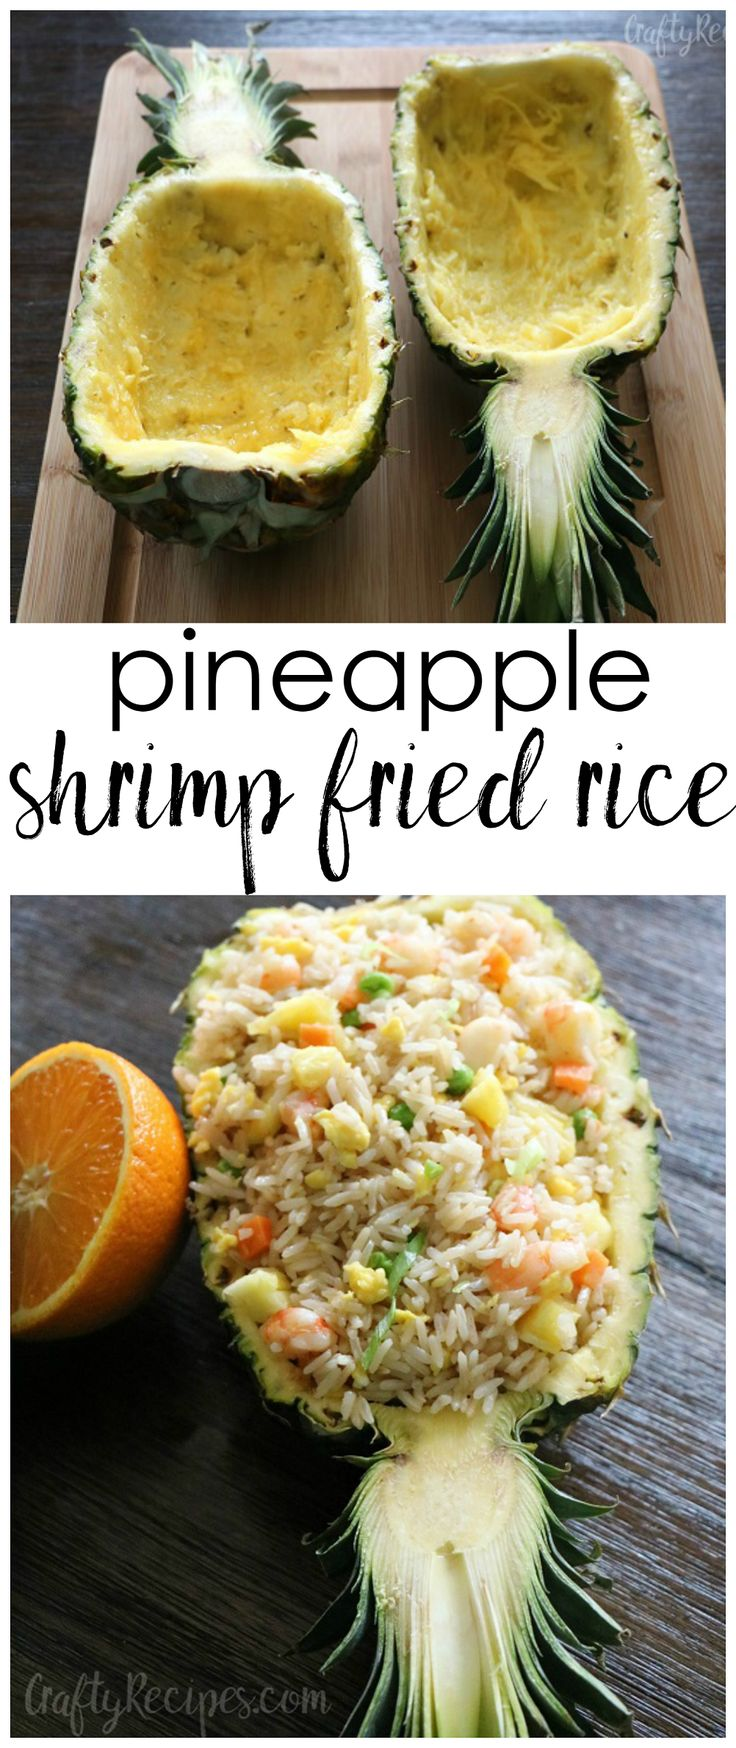 These pineapple shrimp fried rice bowls were amazing! Fun recipe for summer